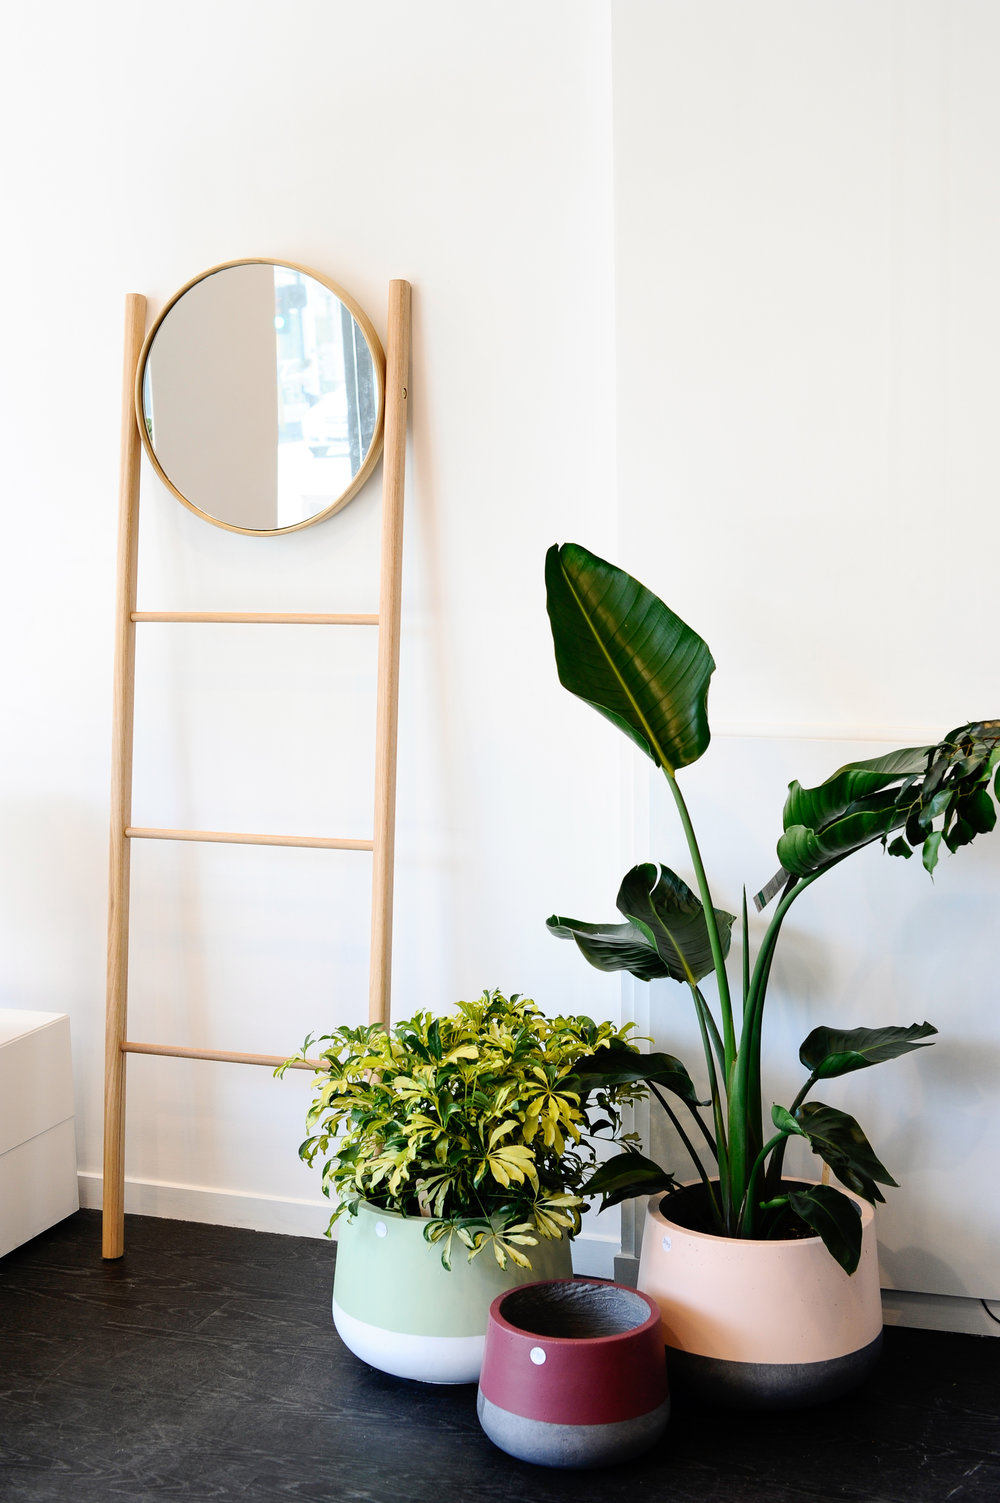 The 'Cuba Mirror Ladder Rack' designed by Lucy and crafted by Adam from Beeline Design. Image credit : Haley Kigbo